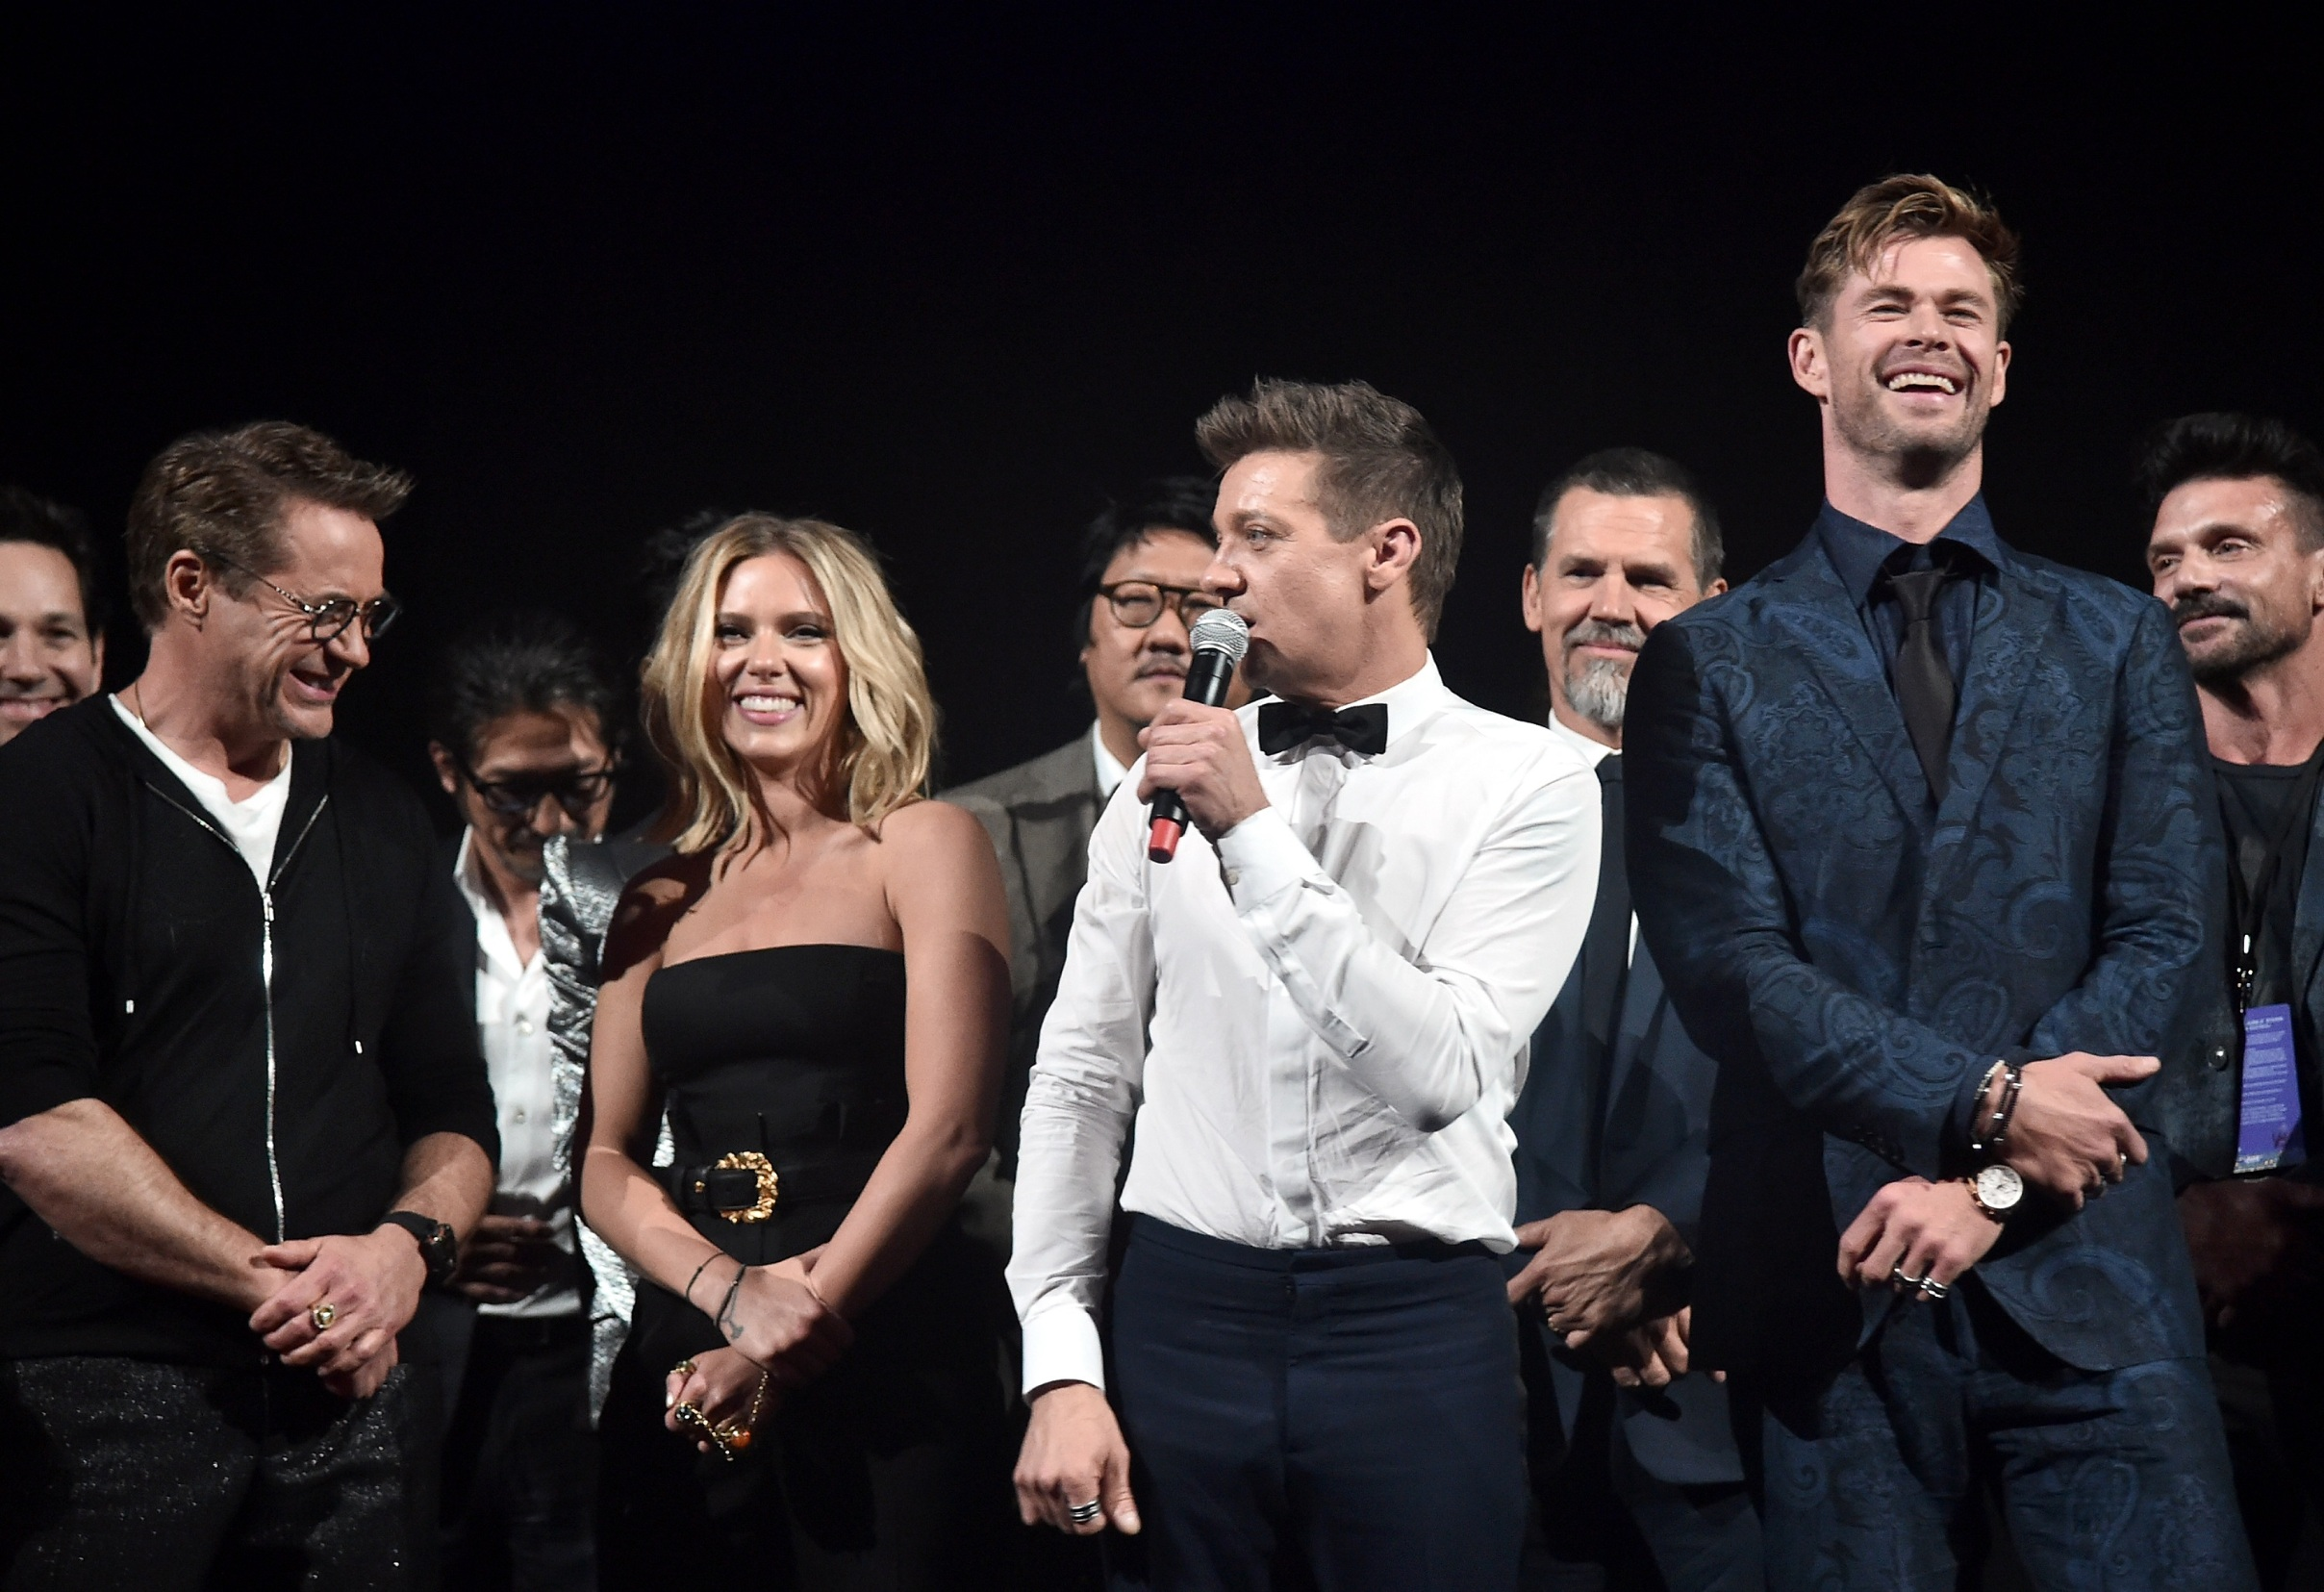 LOS ANGELES, CA - APRIL 22:  (L-R) Robert Downey Jr., Scarlett Johansson, Jeremy Renner, and Chris Hemsworth speak onstage during the Los Angeles World Premiere of Marvel Studios'